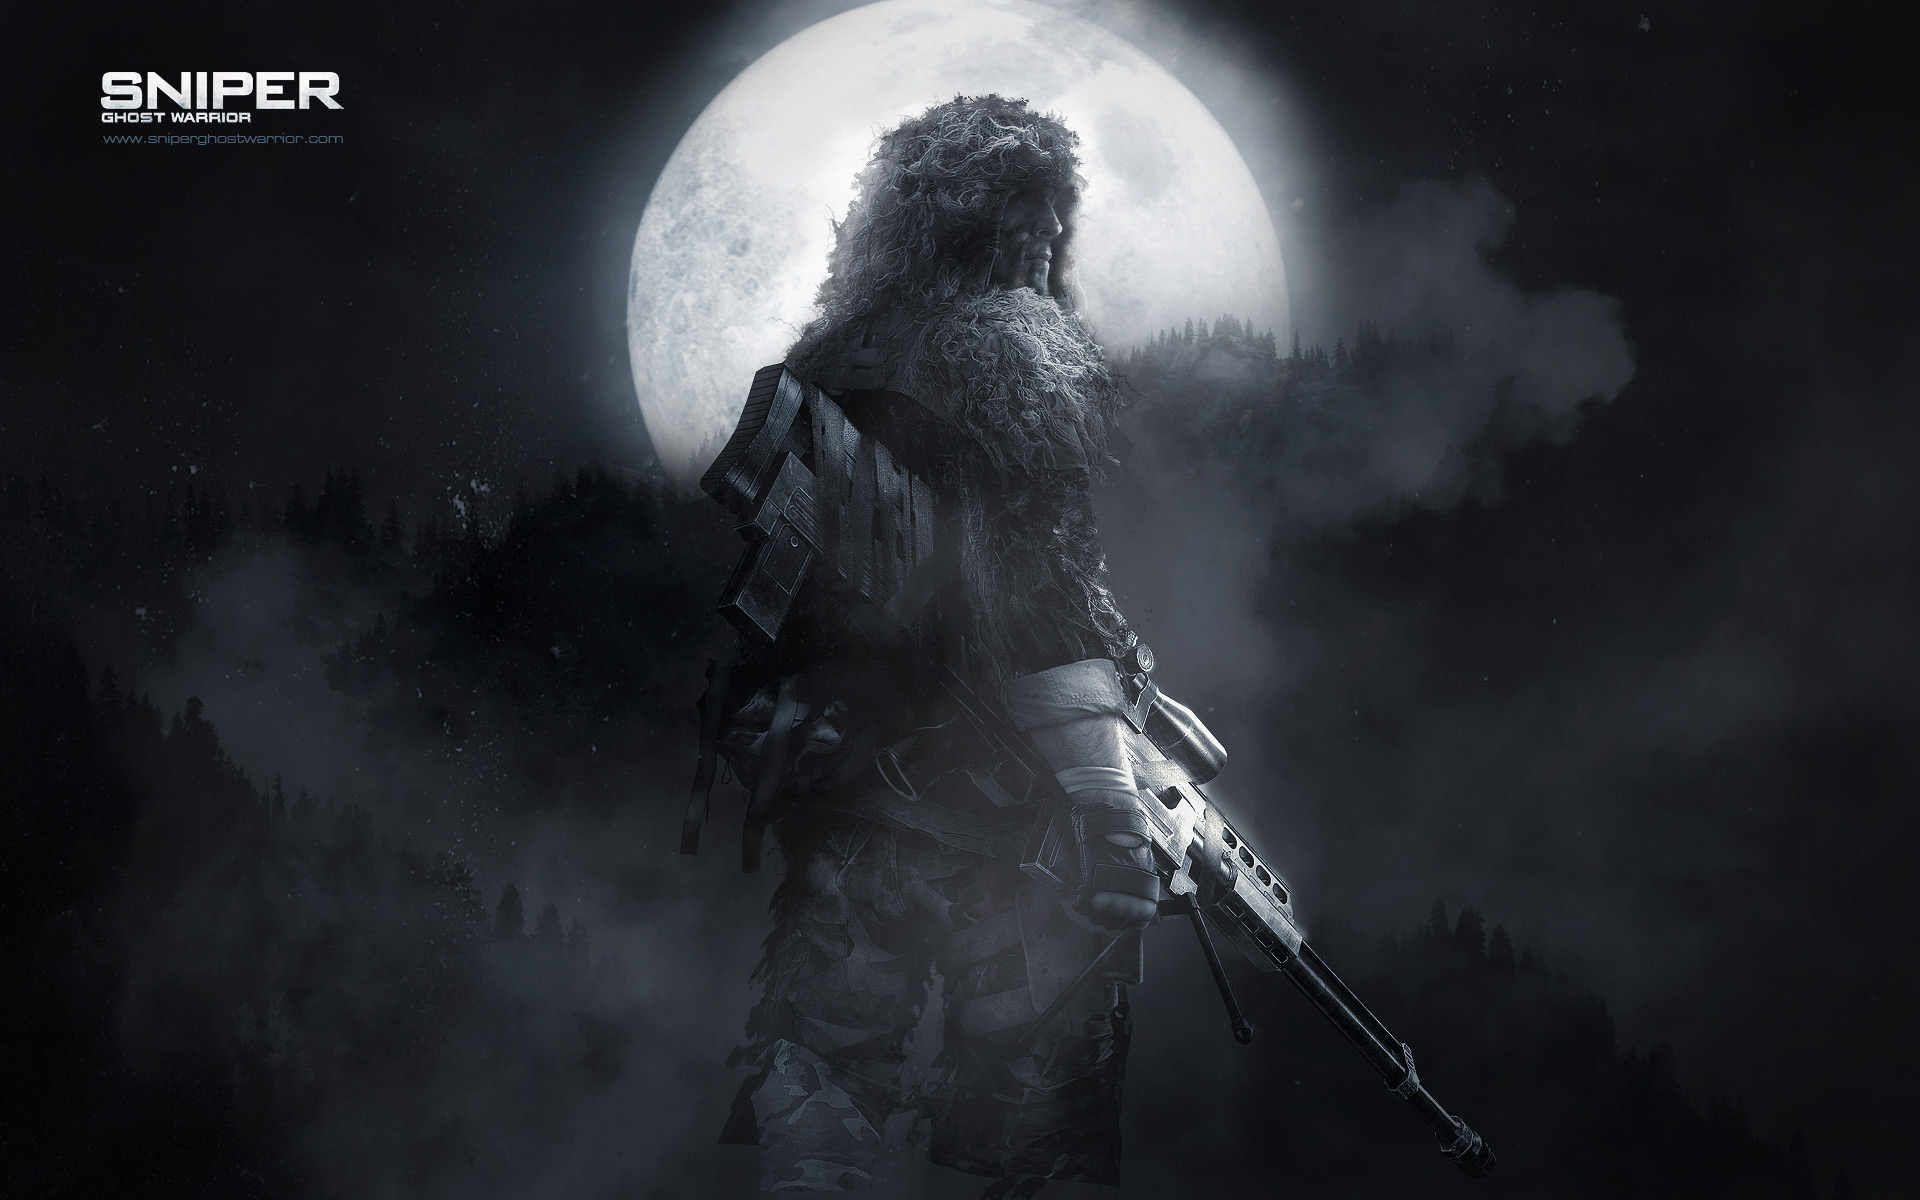 wallpapers warrior papers ghost sniper 1920x1200